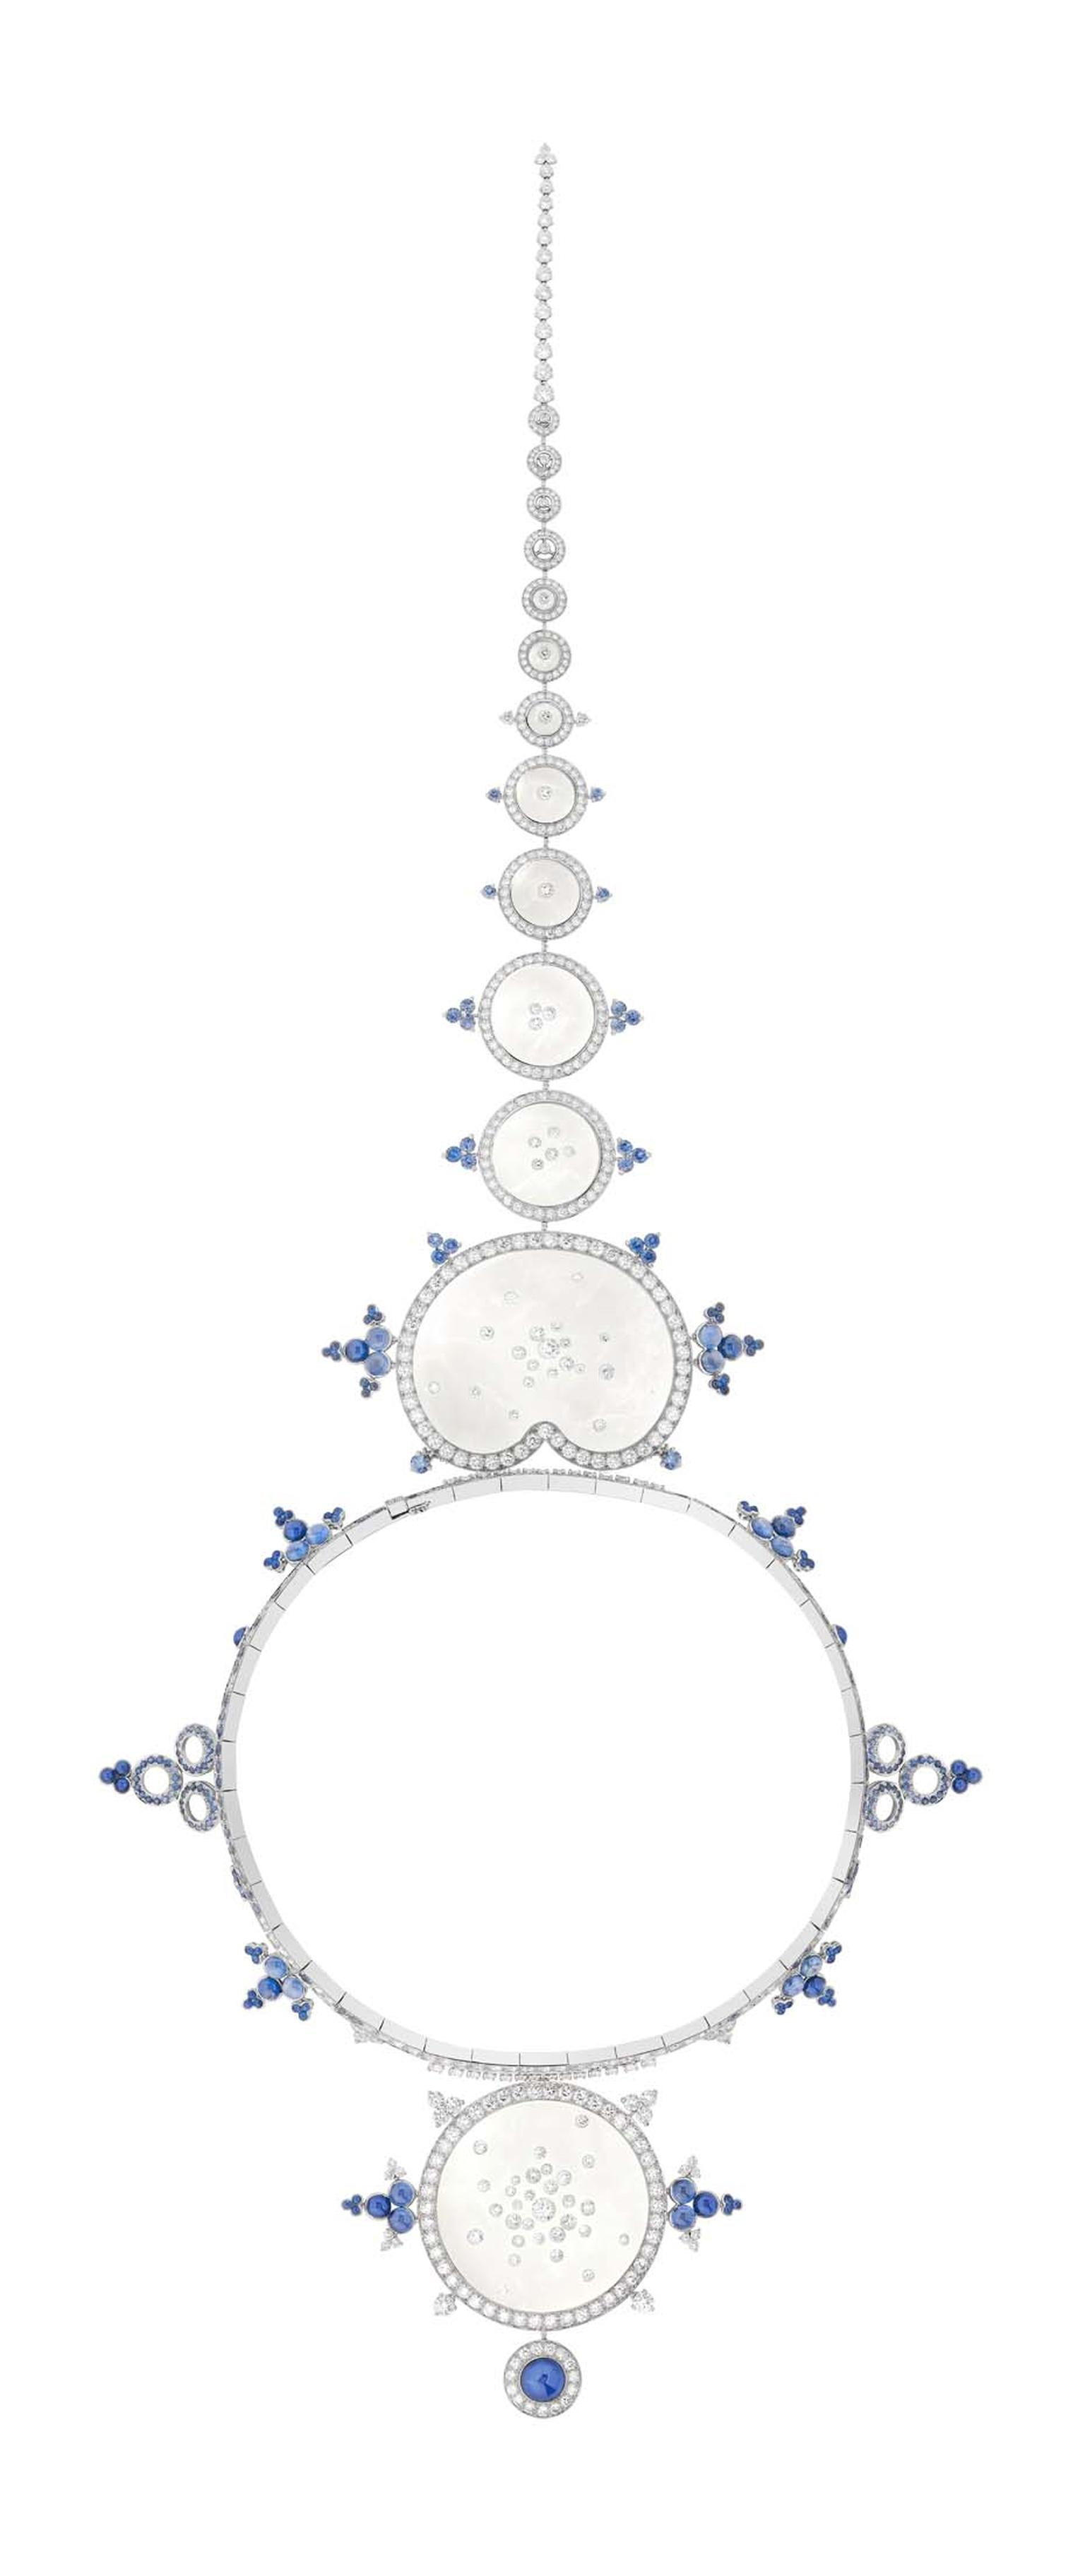 Boucheron Rives du Japan Ricochet brooch with rock cystral, sapphires and diamonds.